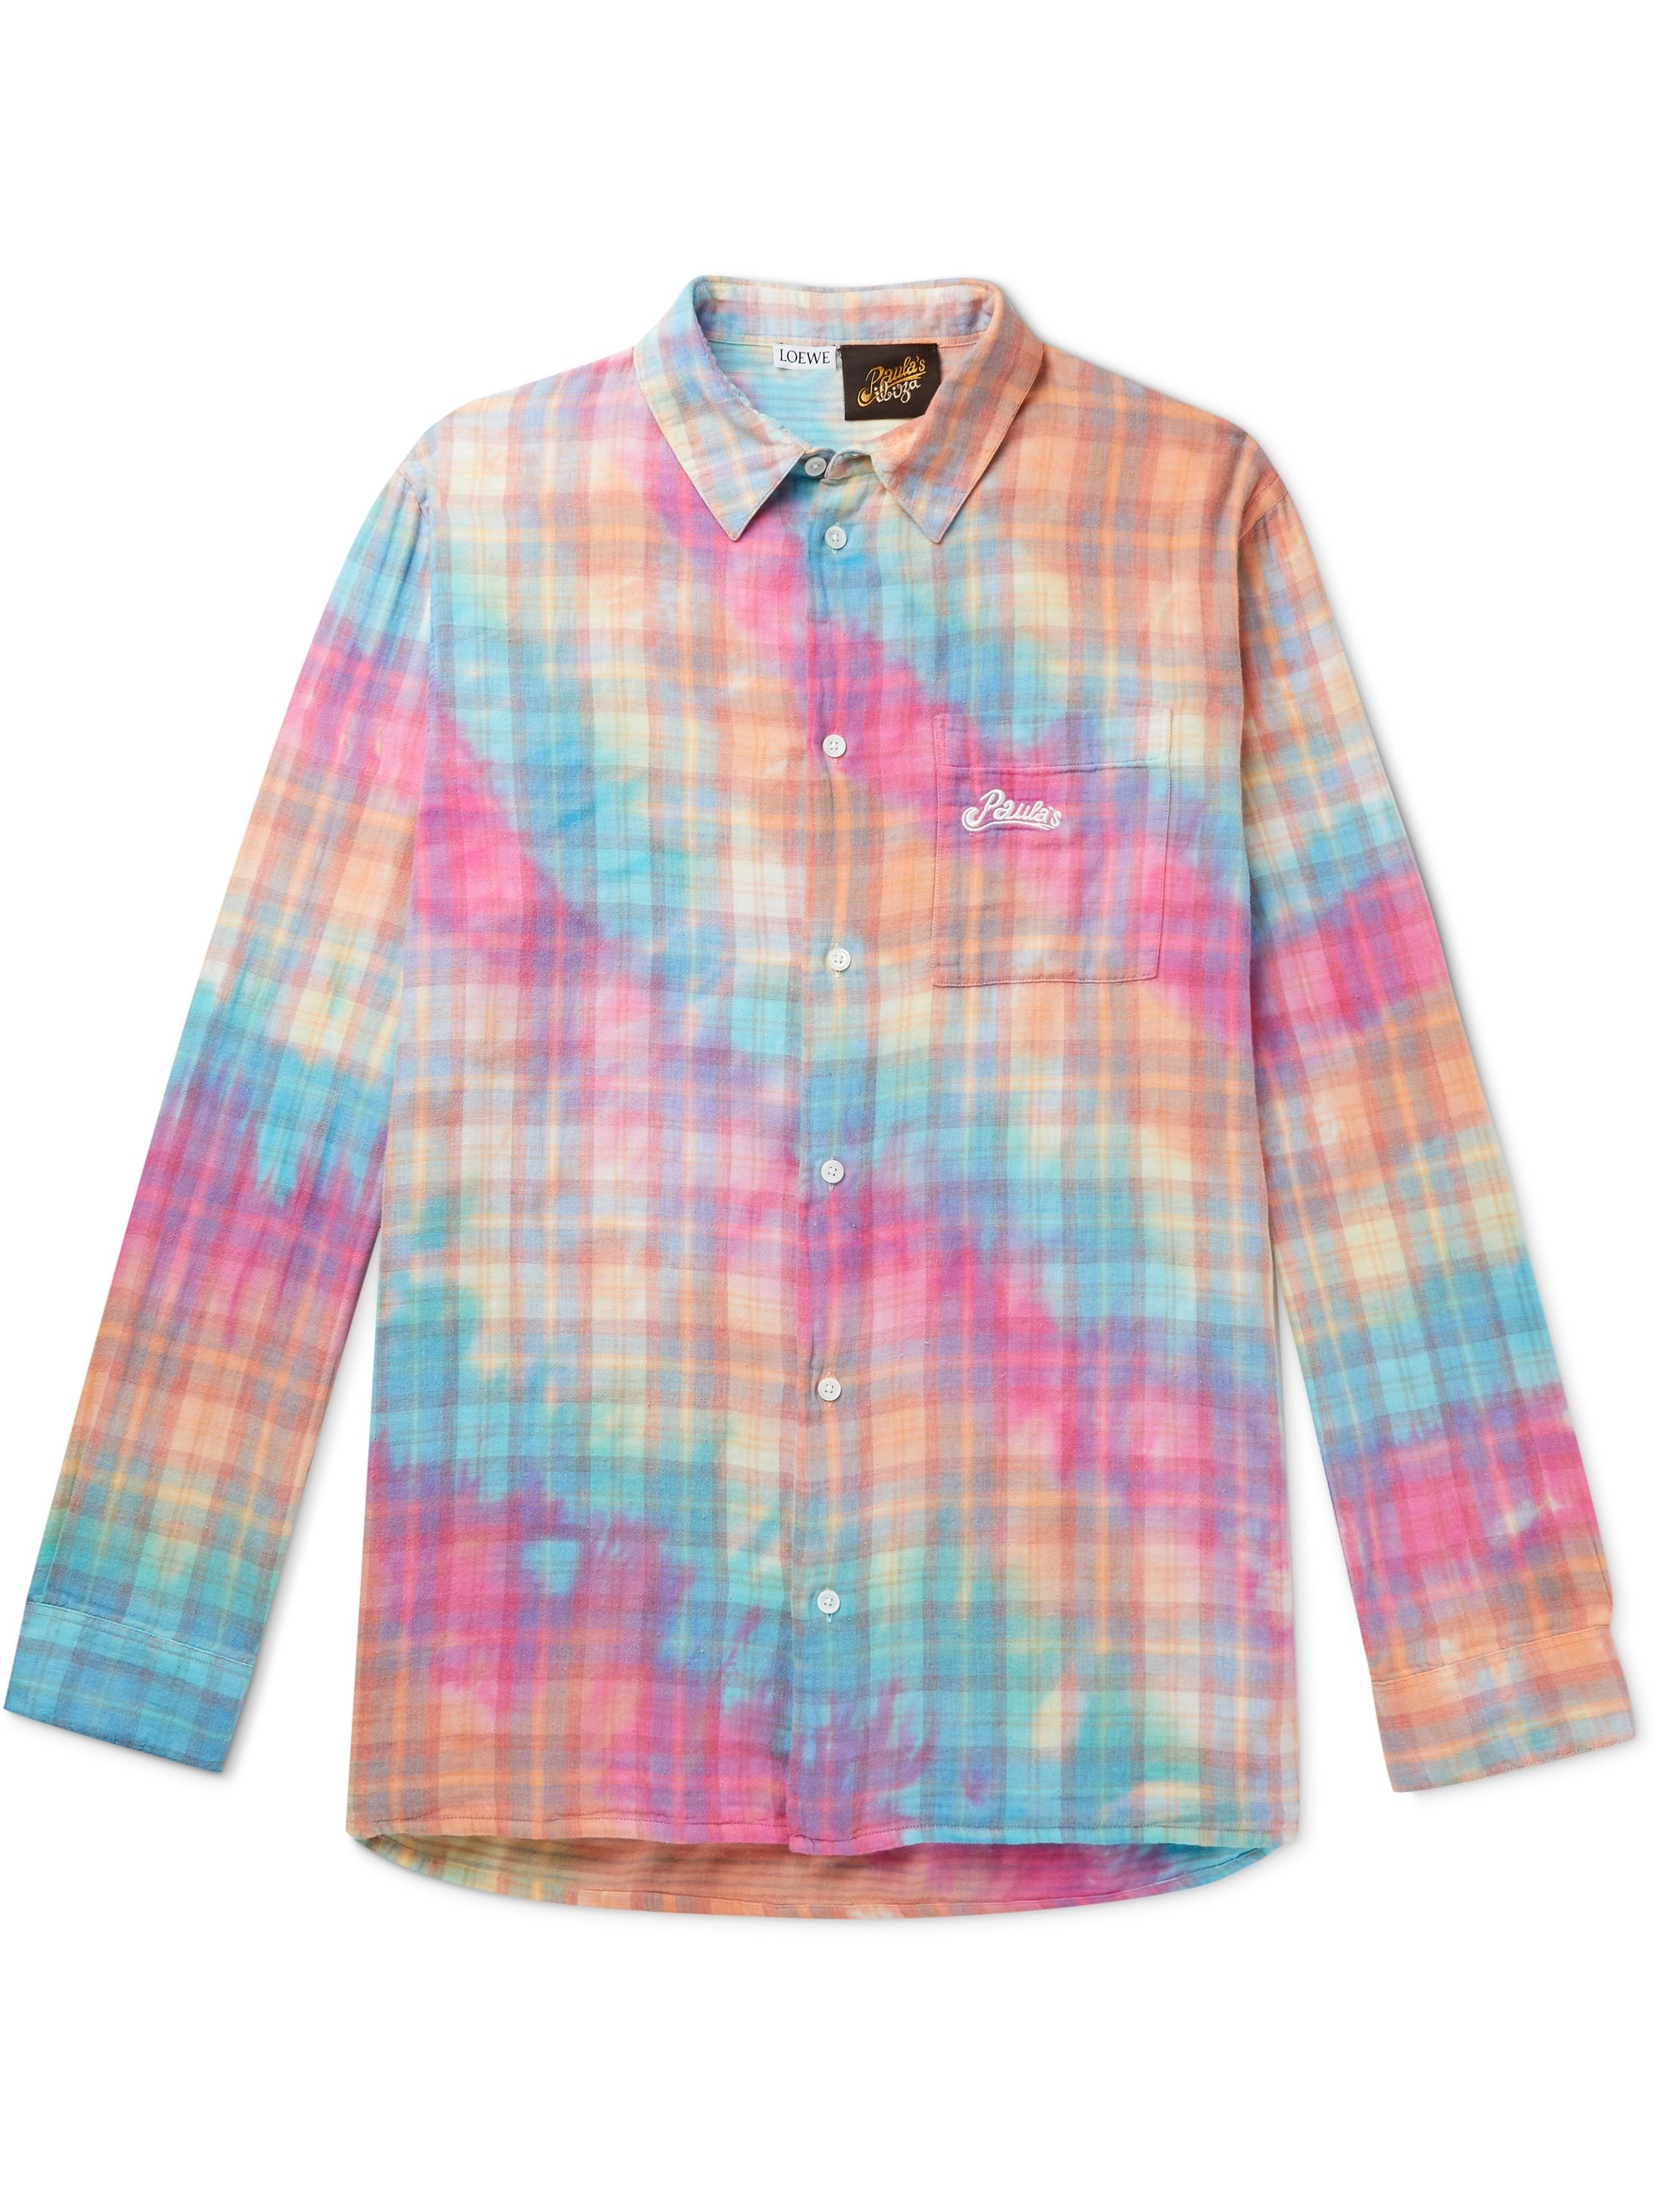 Multi + Paula's Ibiza Tie-dyed Checked Cotton Overshirt | Loewe